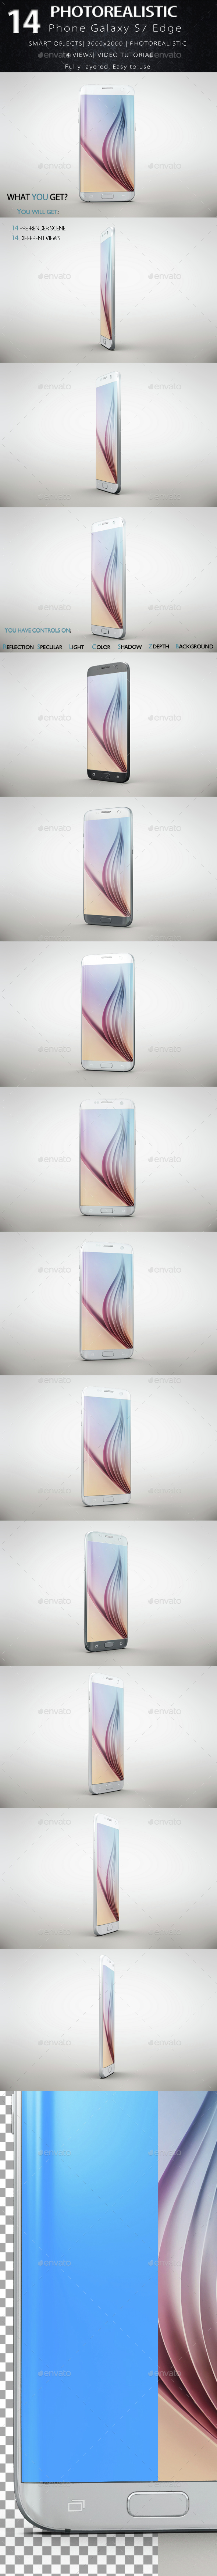 Smartphone Galaxy s7 Edge Mock Up - Product Mock-Ups Graphics